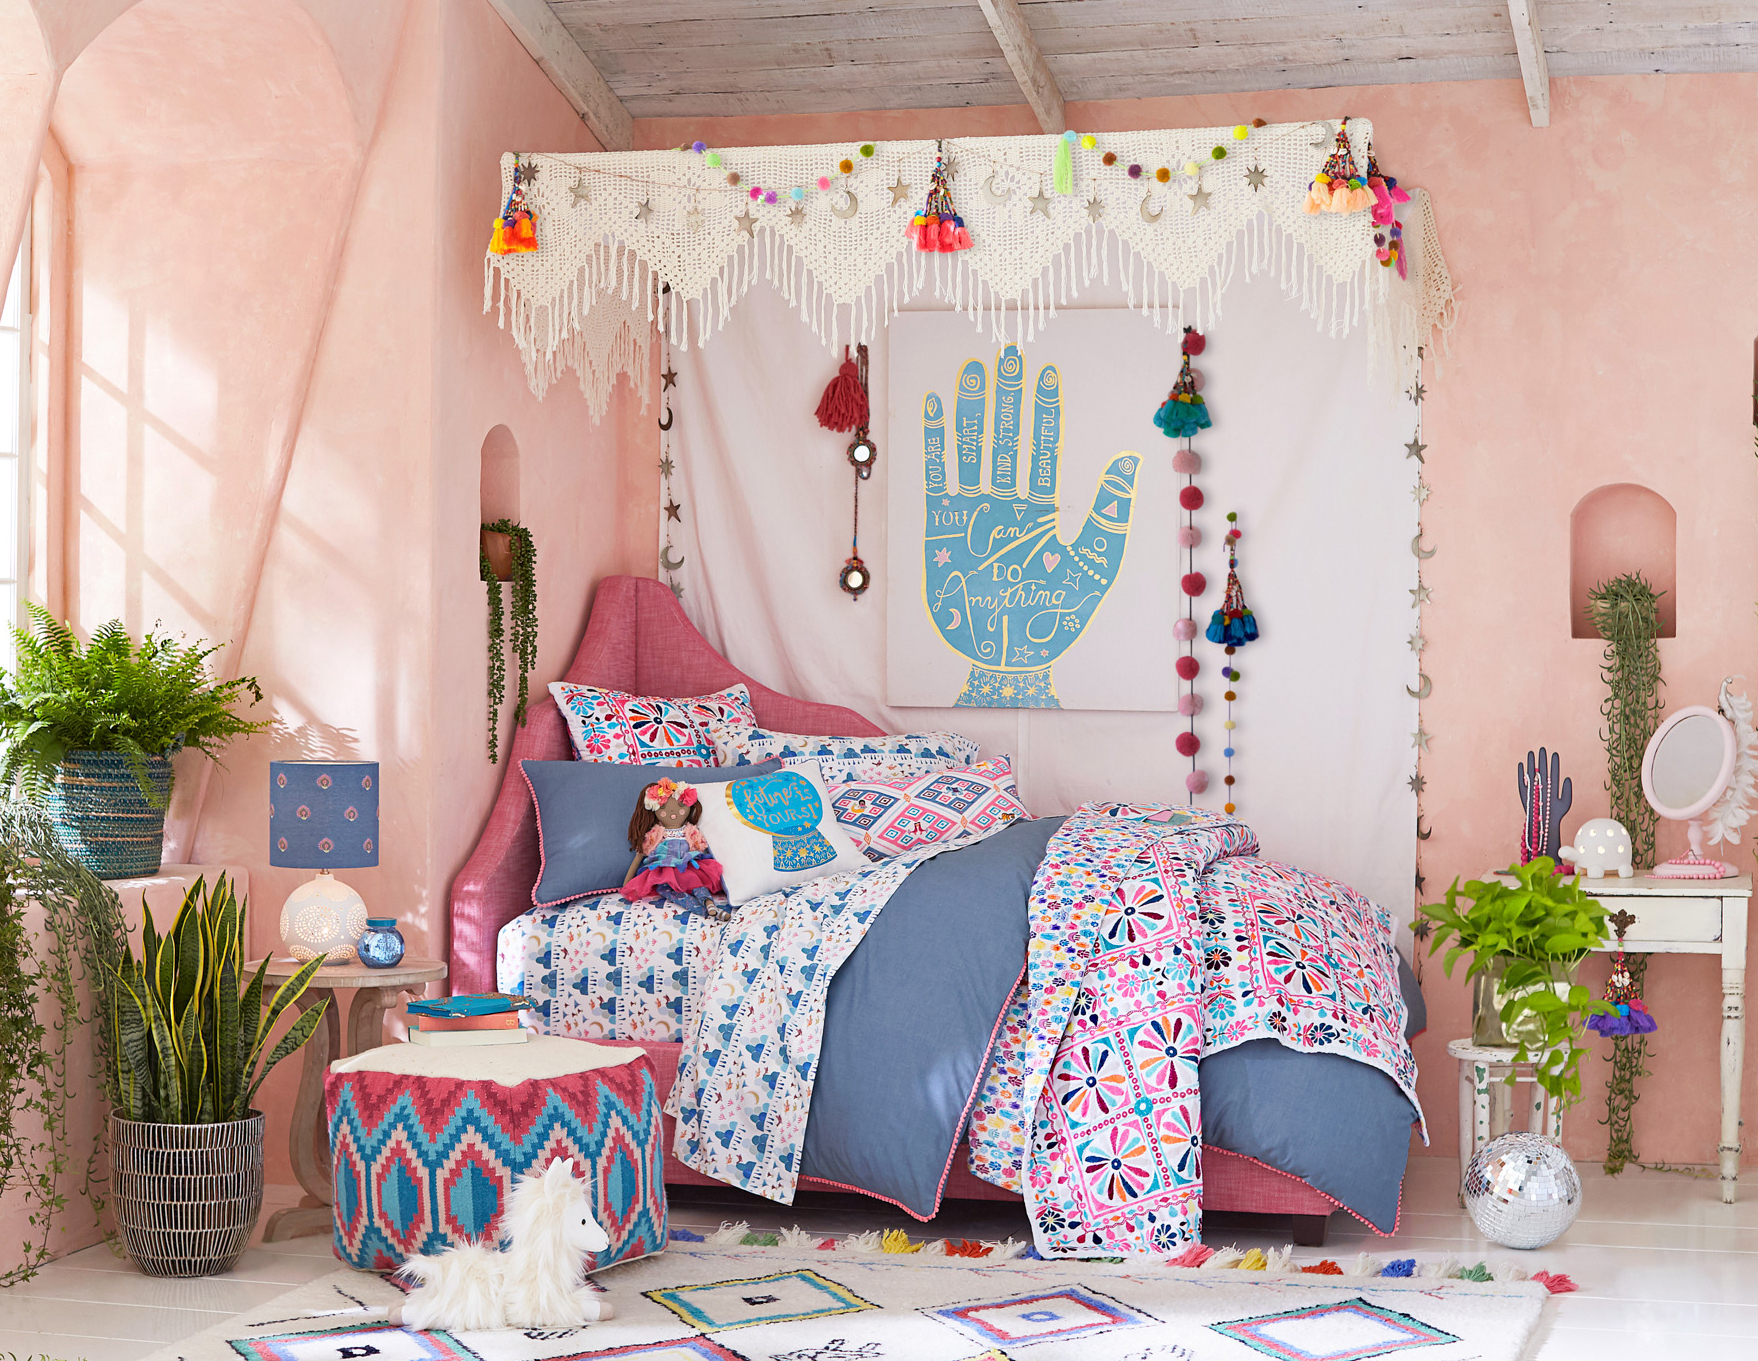 POTTERY BARN KIDS UNVEILS BRIGHT BOHEMIAN COLLECTION WITH DESIGNER AND ARTIST JUSTINA BLAKENEY